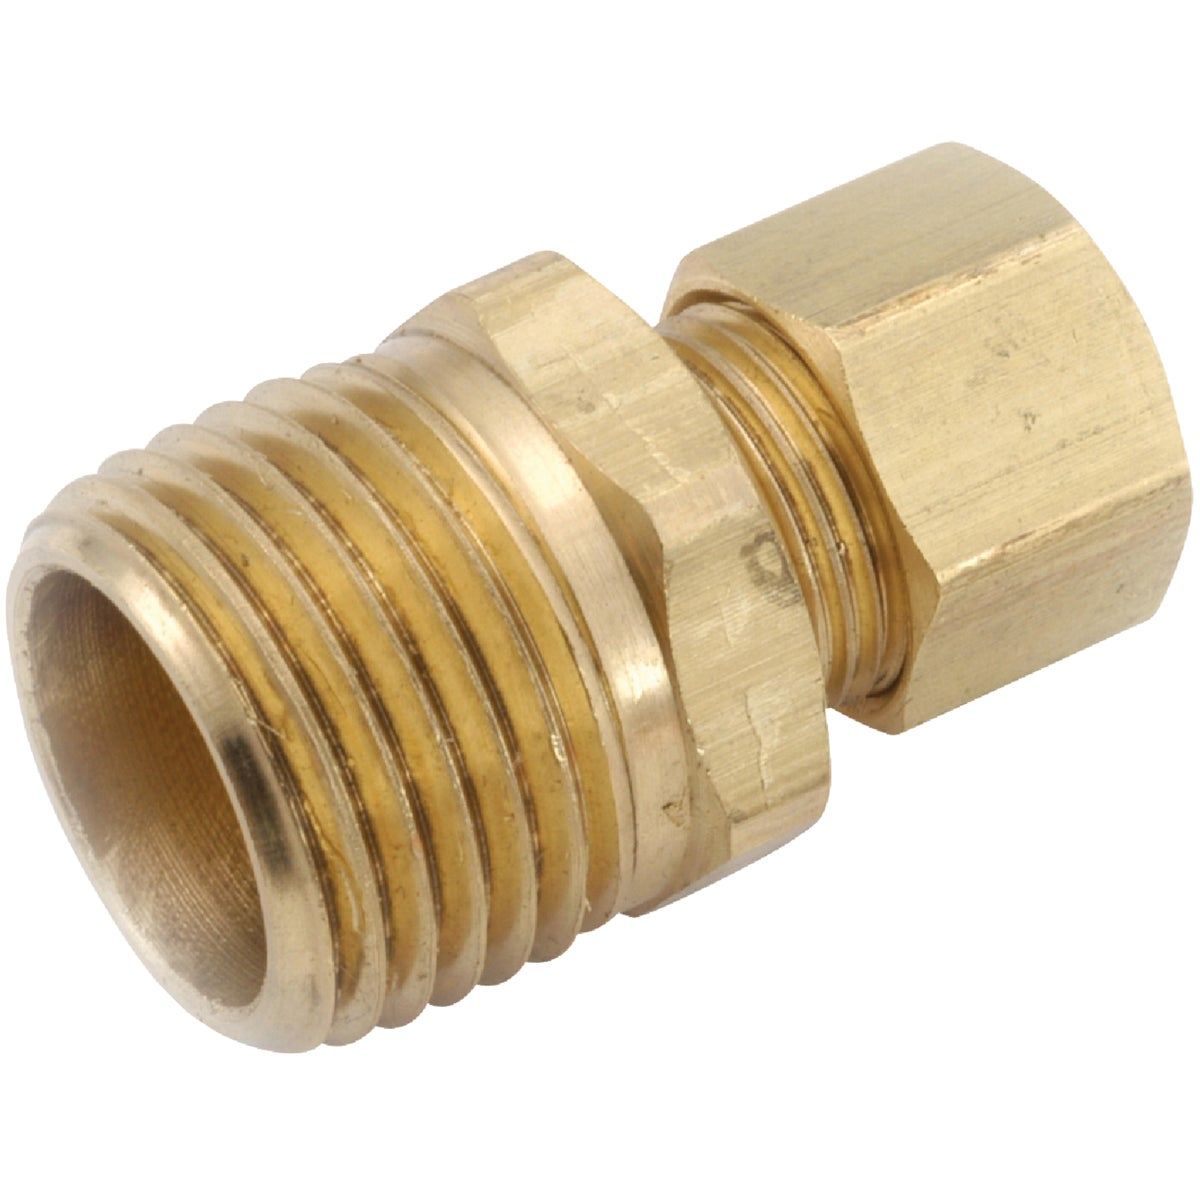 5/8X1/2 MALE CONNECTOR